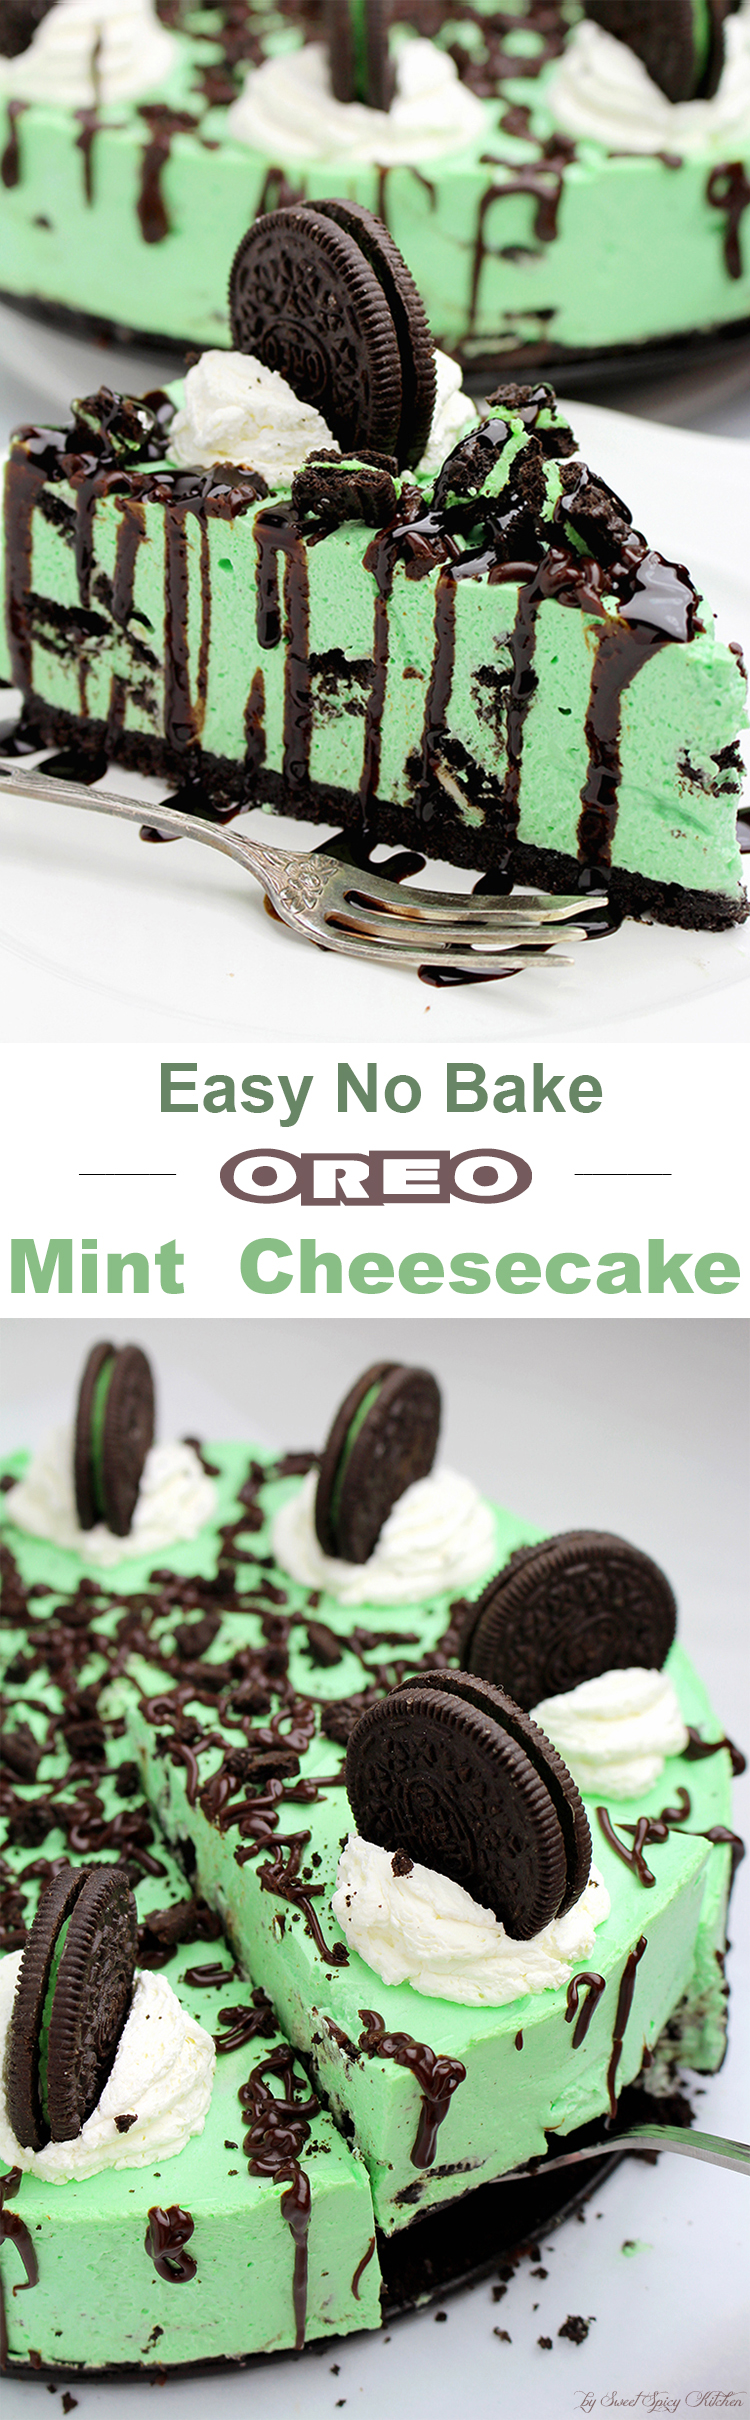 Untitled-155 Easy No Bake Oreo Mint Cheesecake